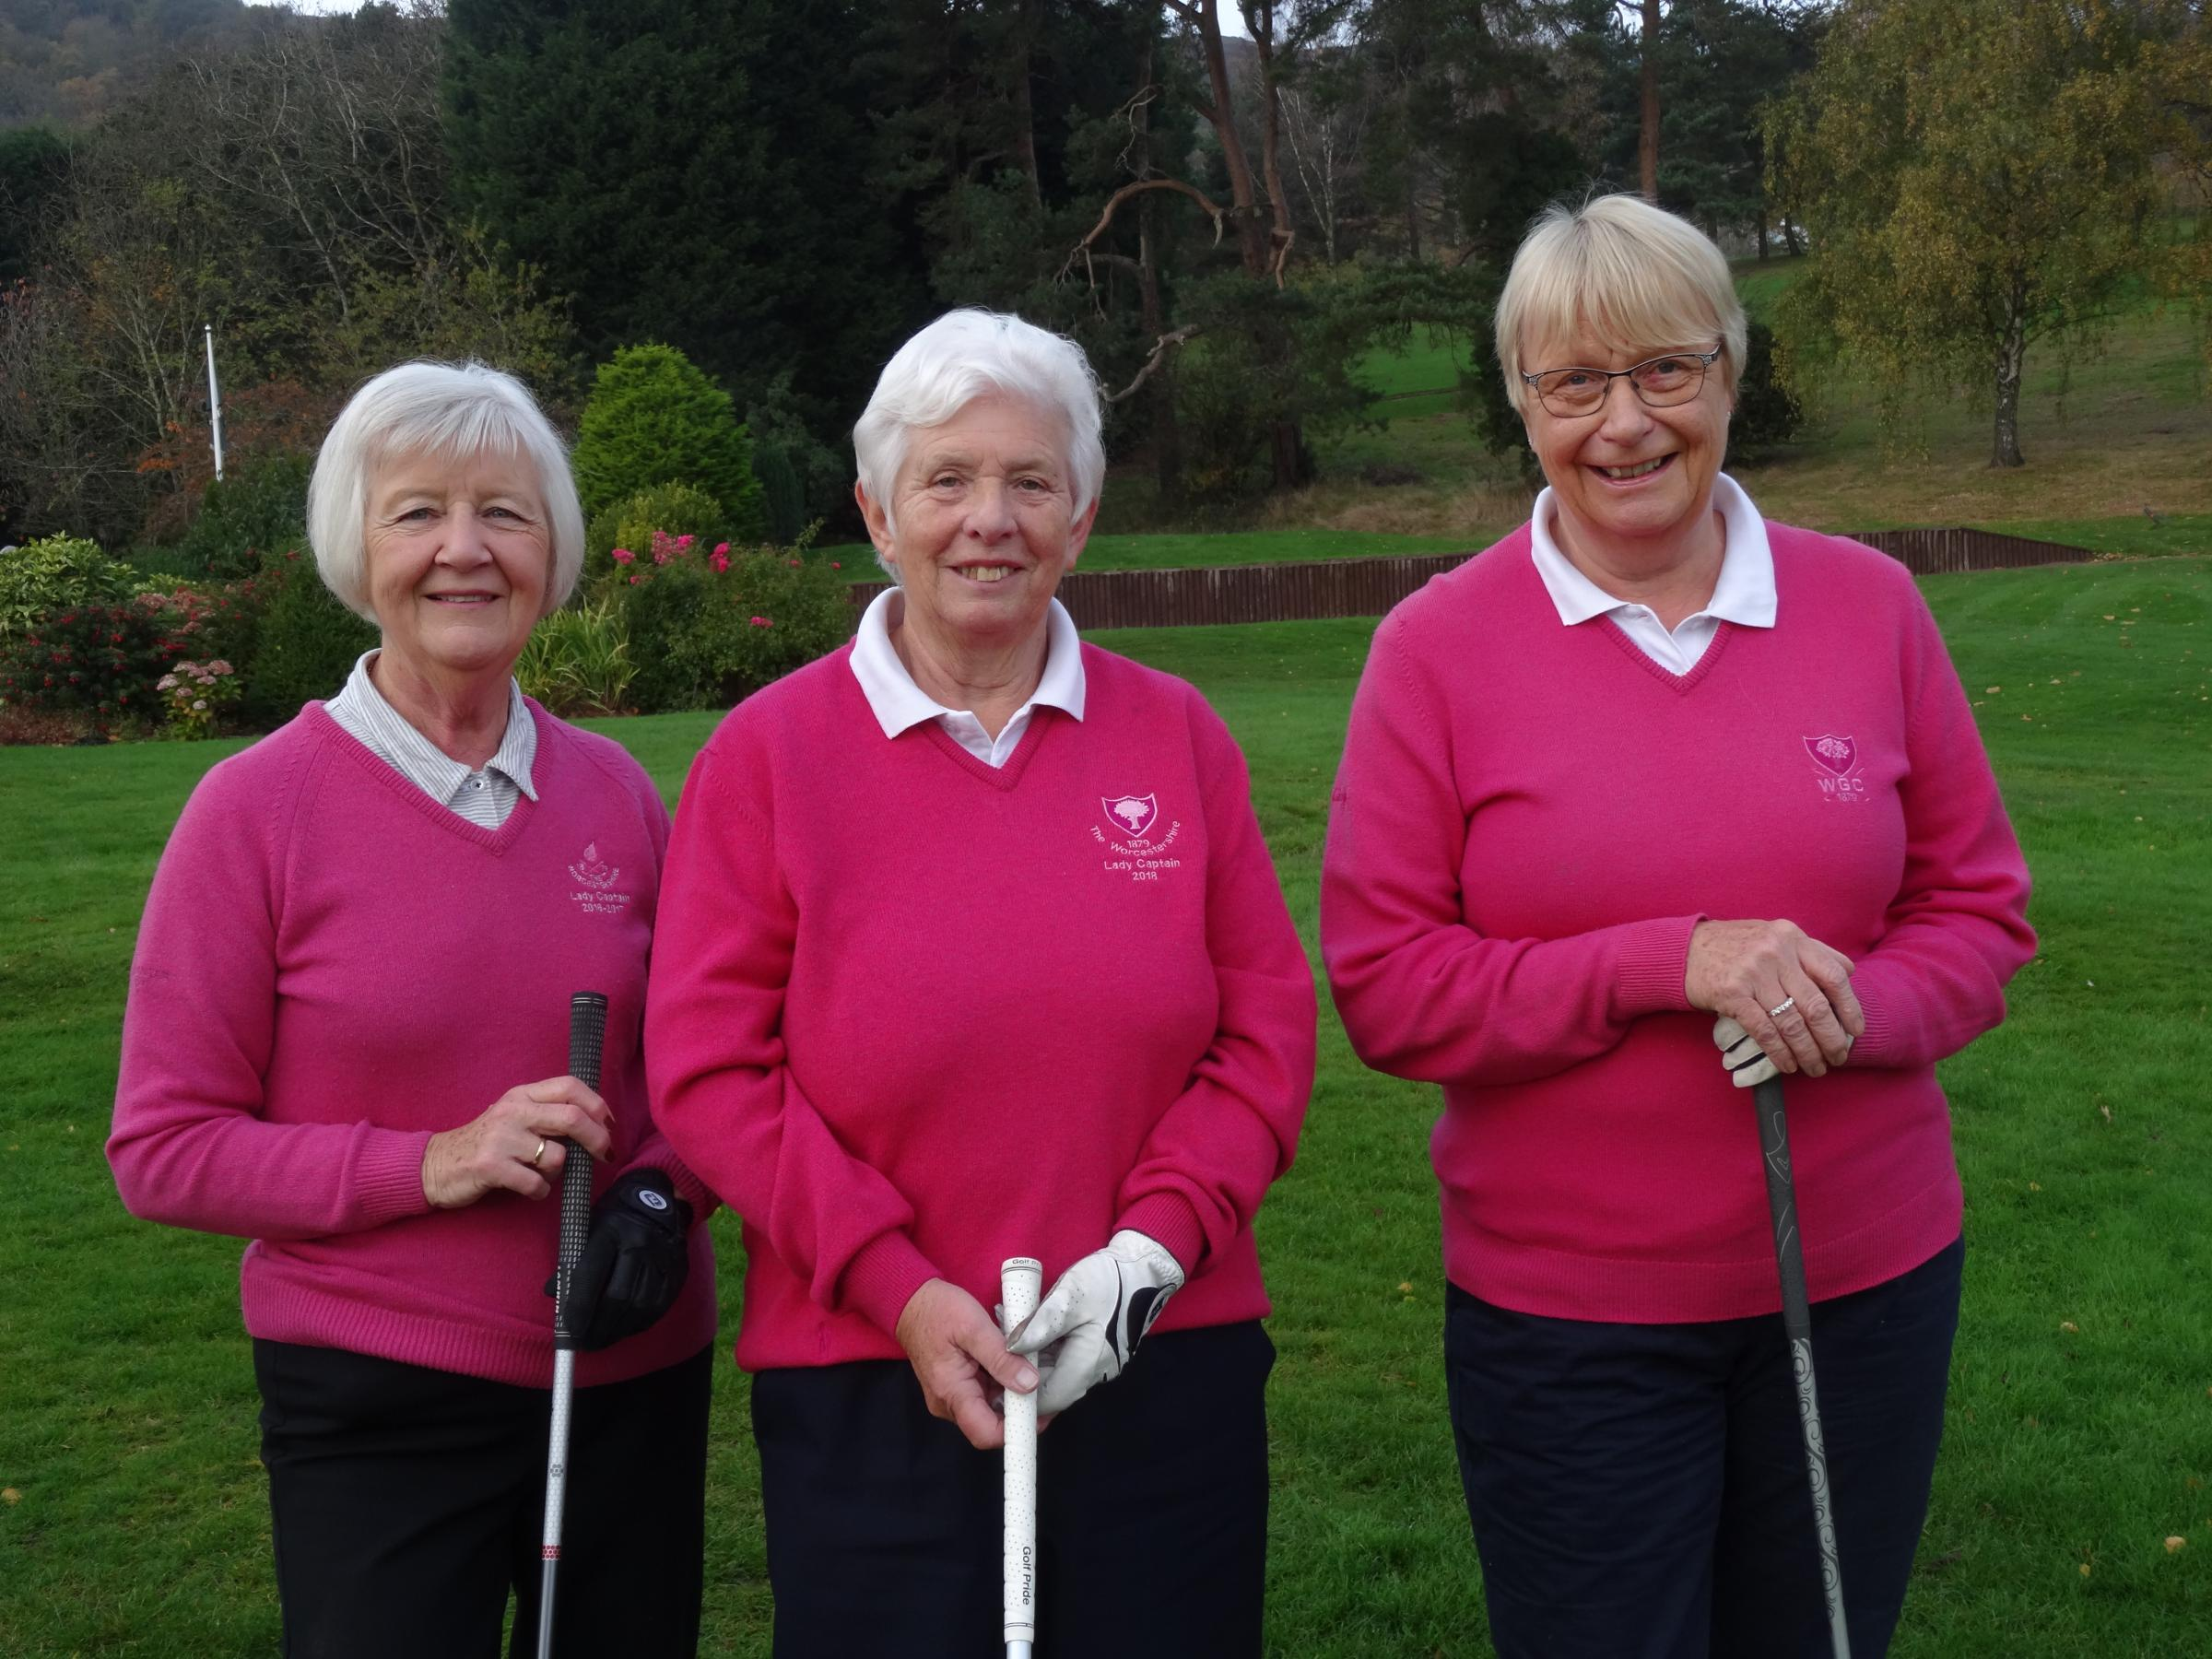 The Worcestershire's immediate past captain Elsie Kelsall, new lady captain Susan Boardman and vice-captain Julia Radley. Picture: JAN KIRKLAND